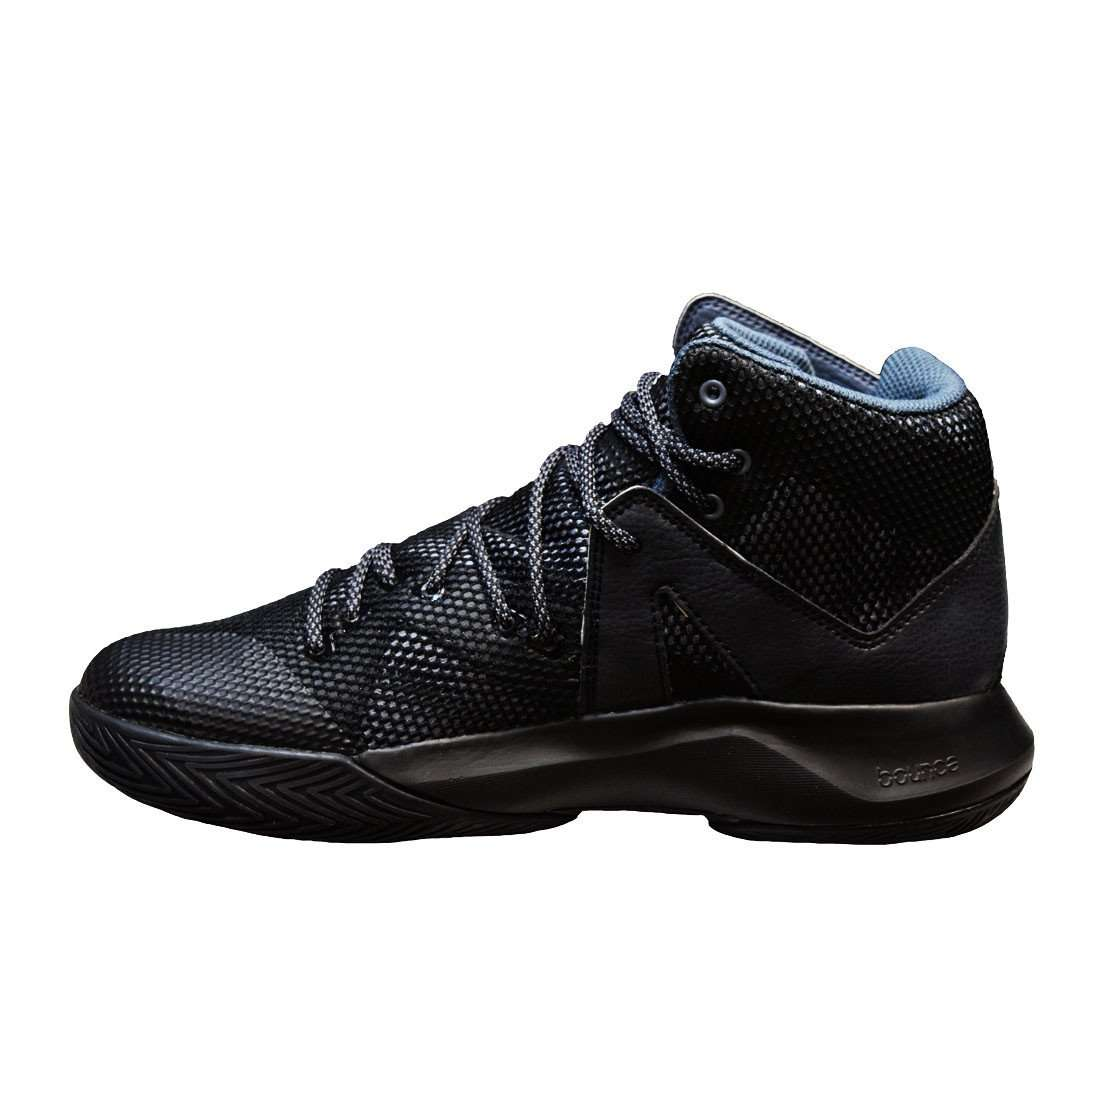 3363a55d144 ... adidas Crazy Bounce Men s Basketball Shoes - League Outfitters ...